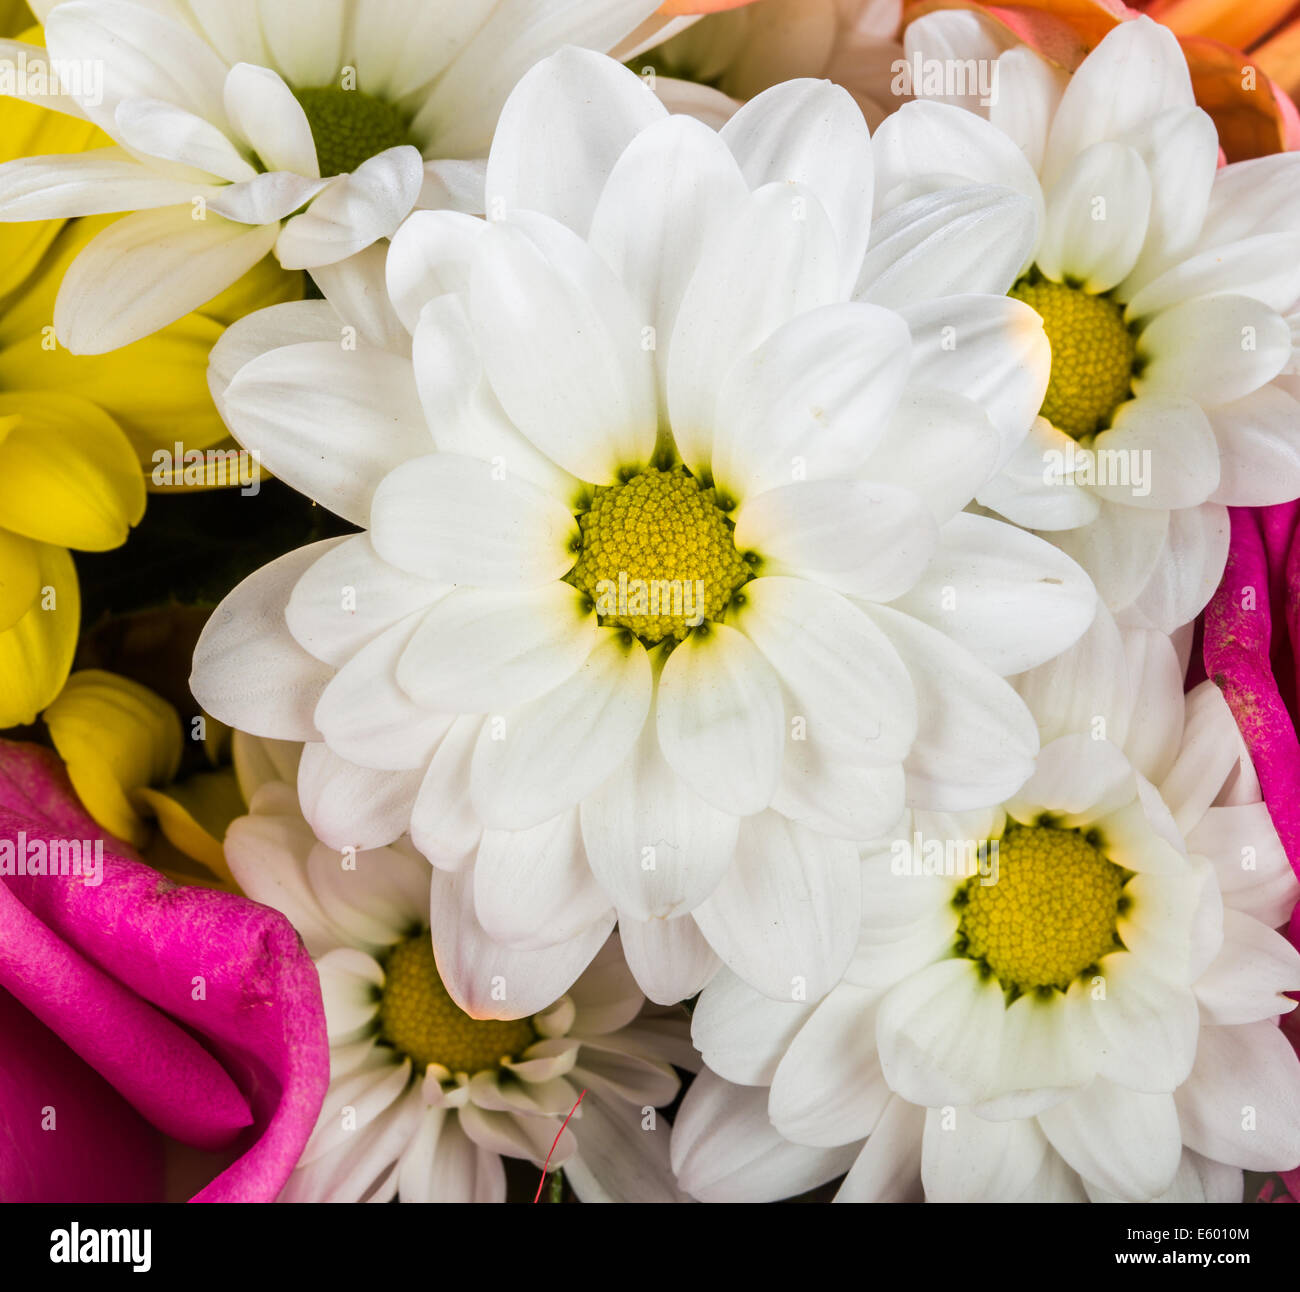 Background from different flowers closeup - Stock Image